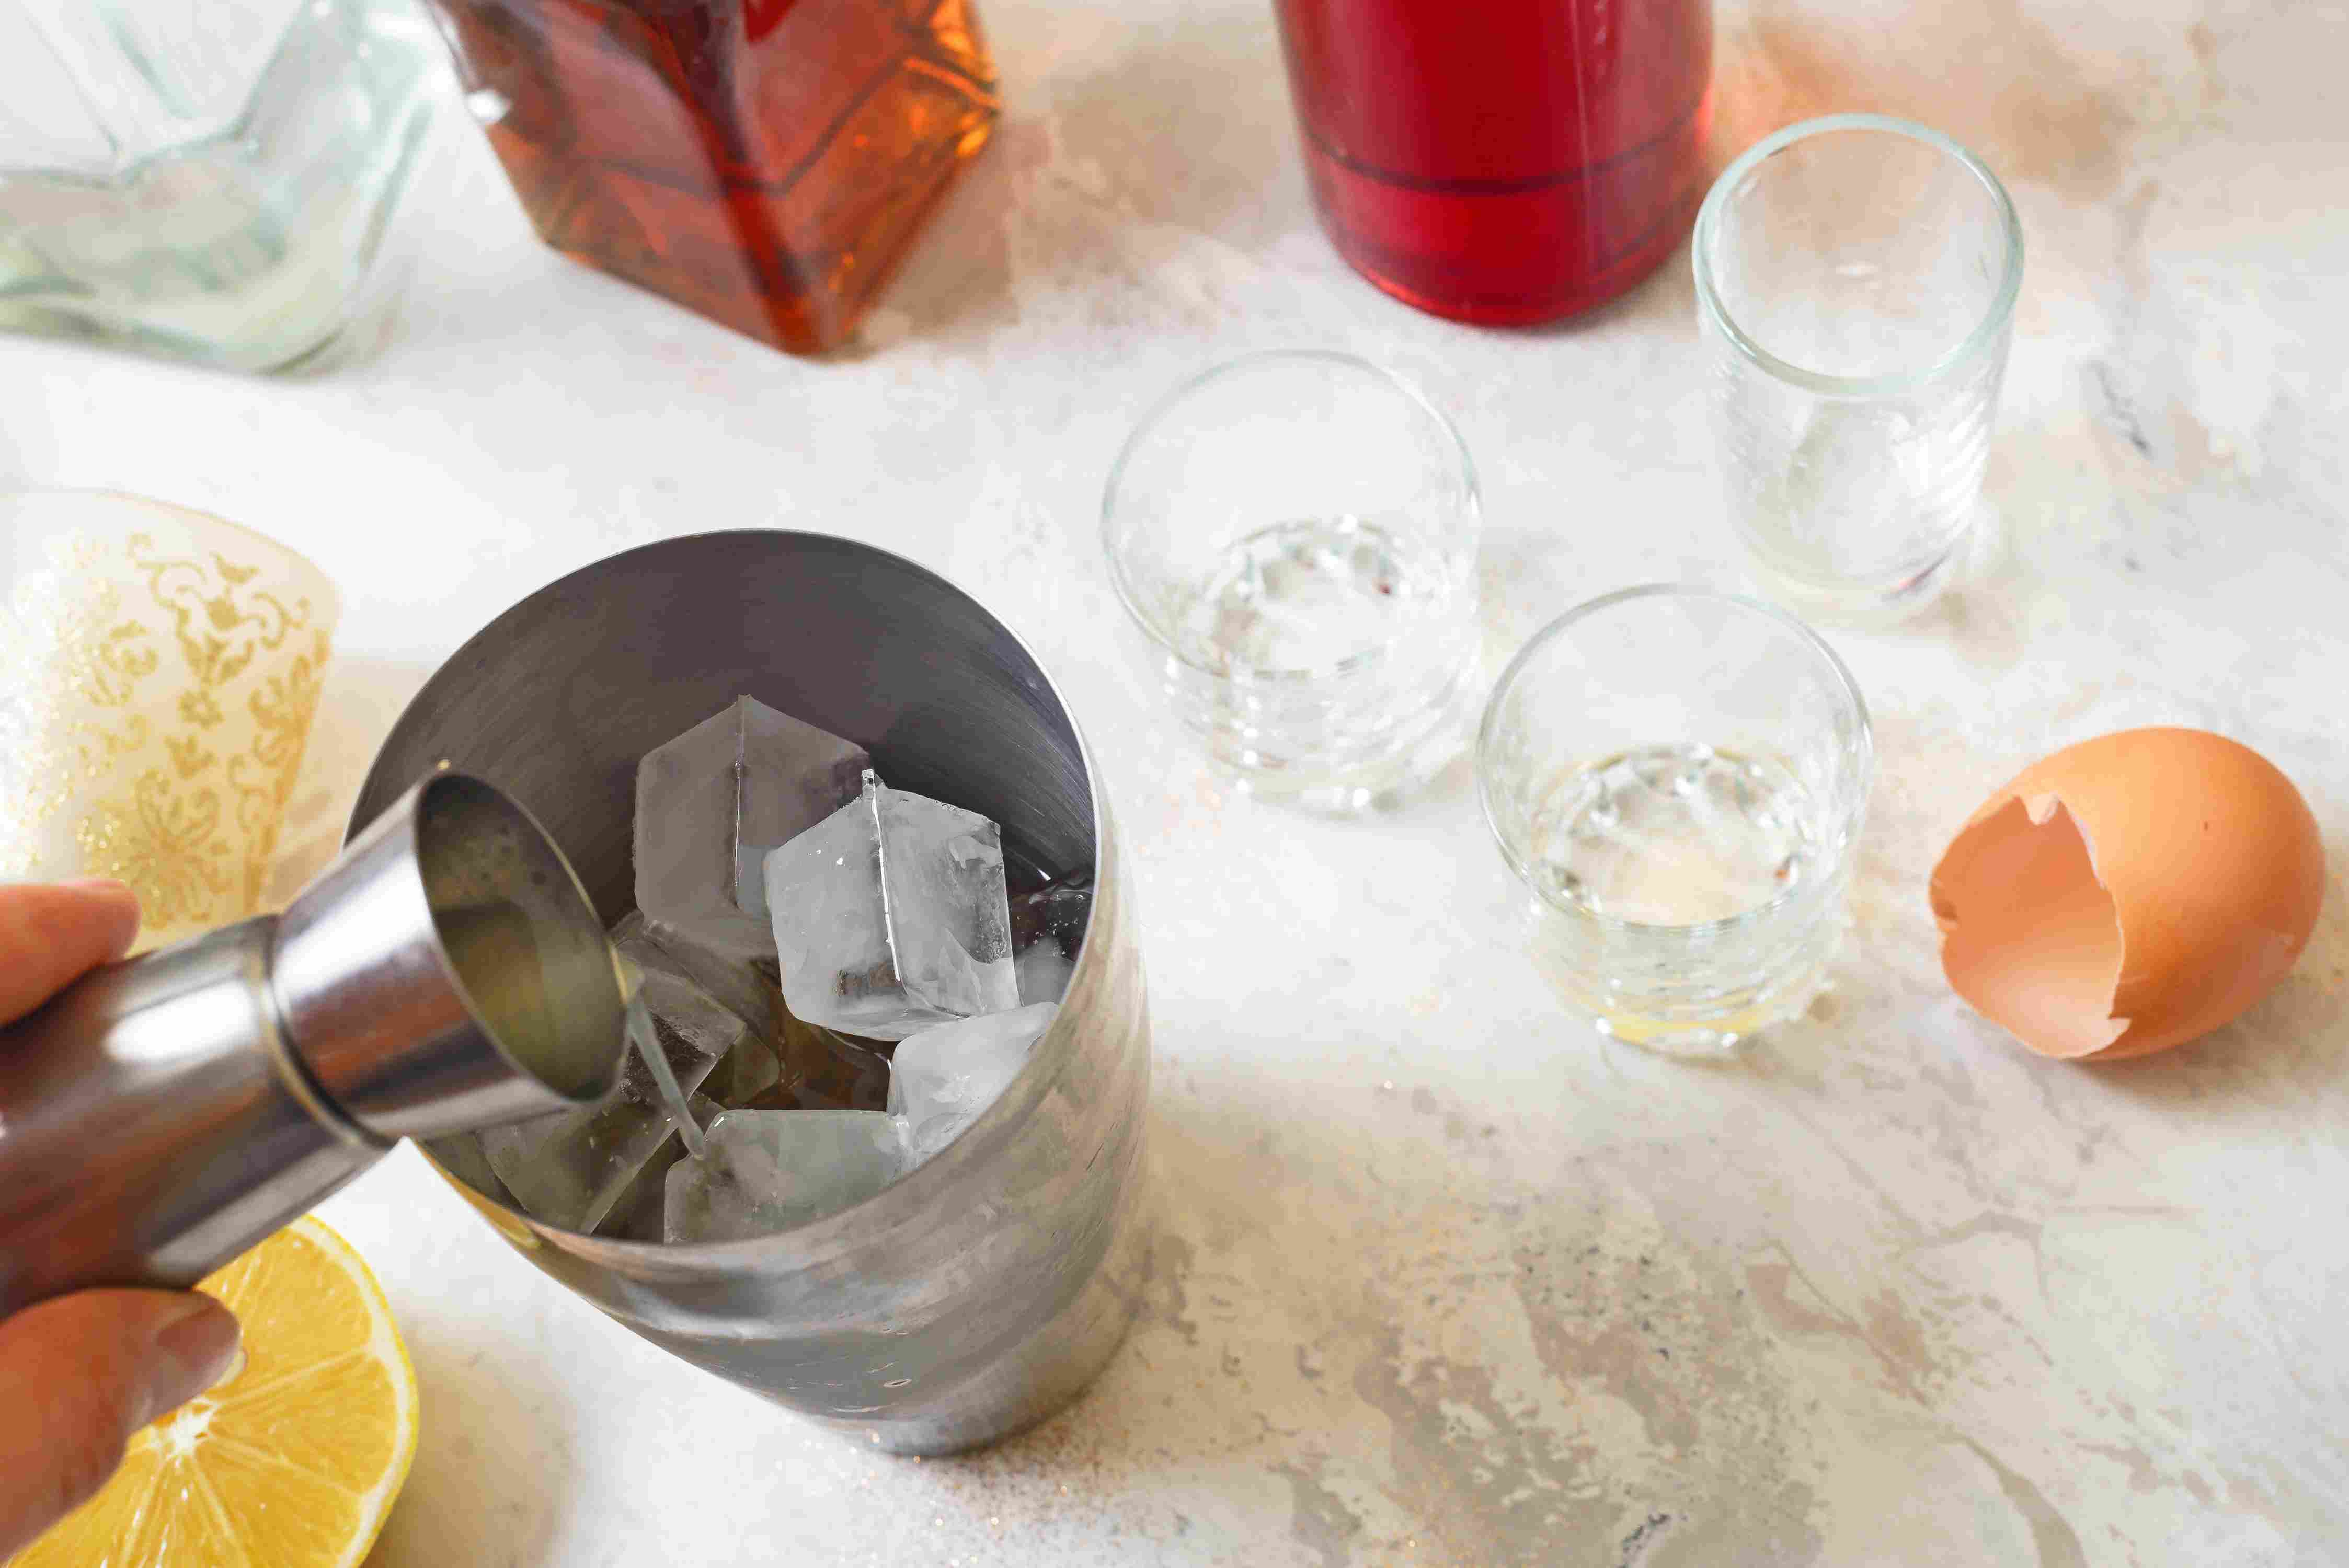 Pour ingredients into a cocktail shaker with ice cubes